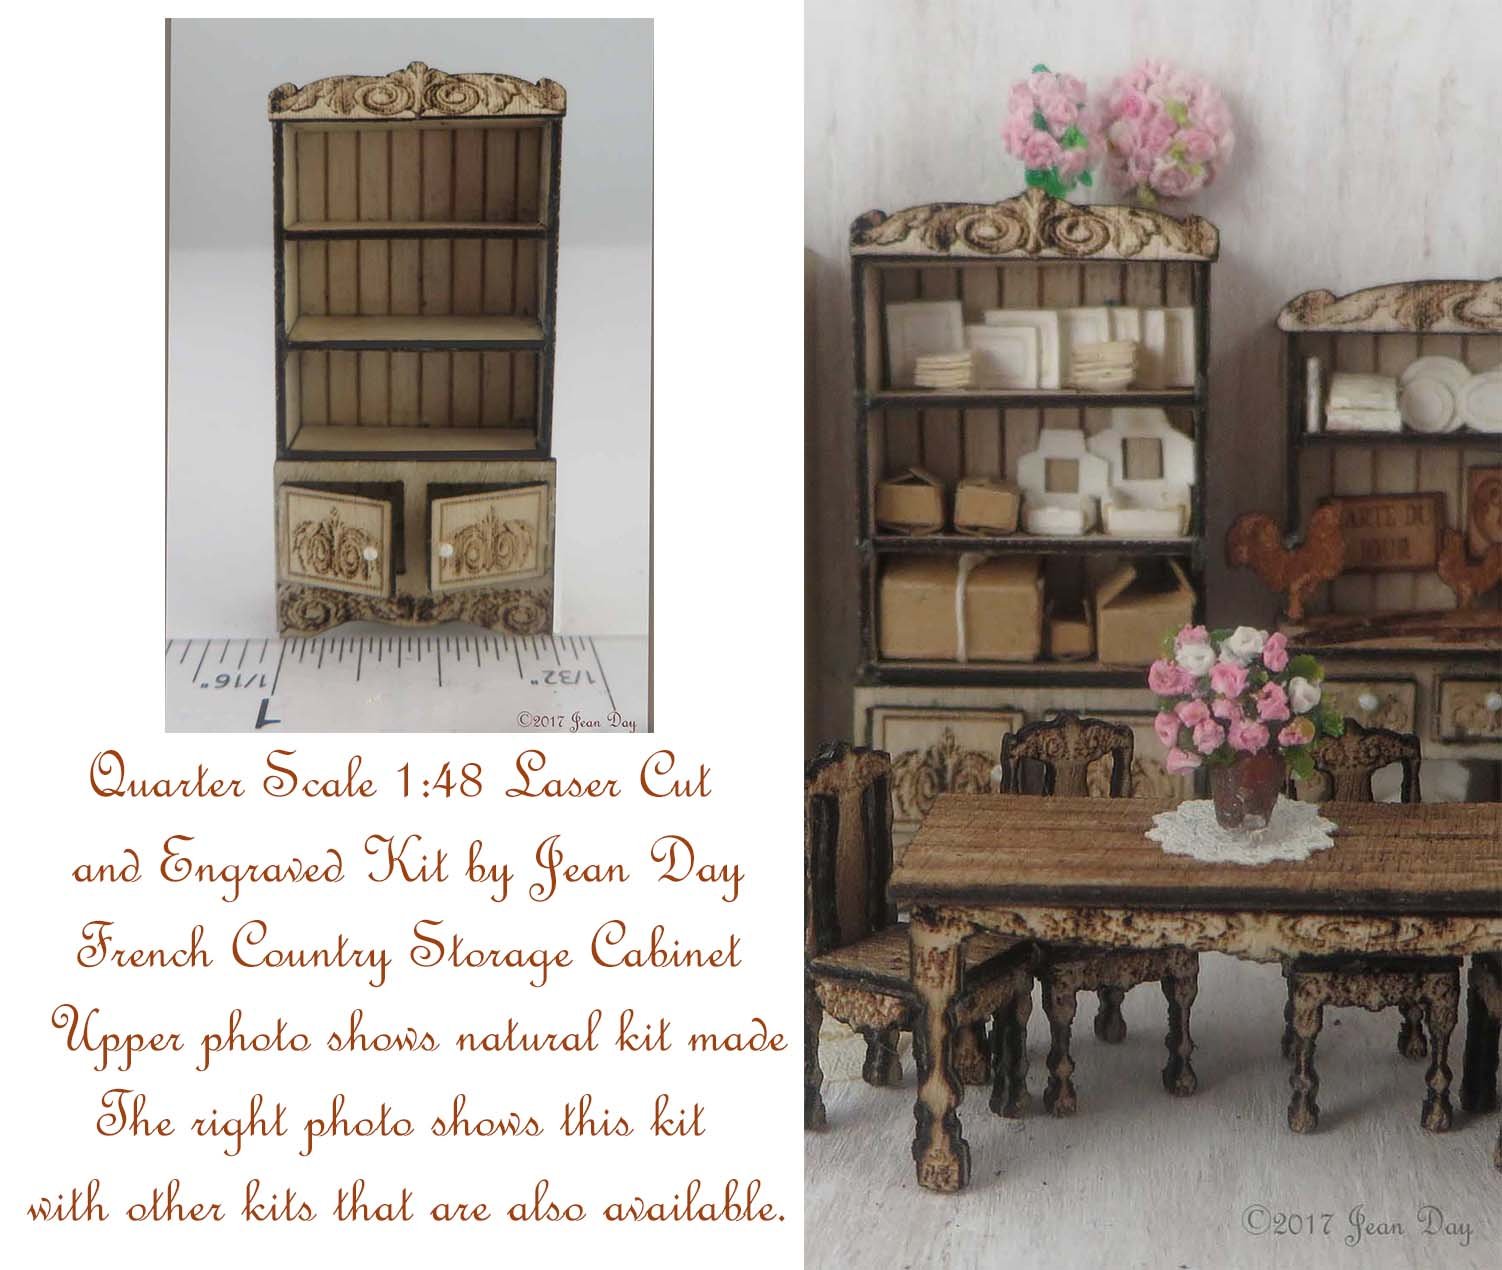 French Country Storage Cabinet LC048